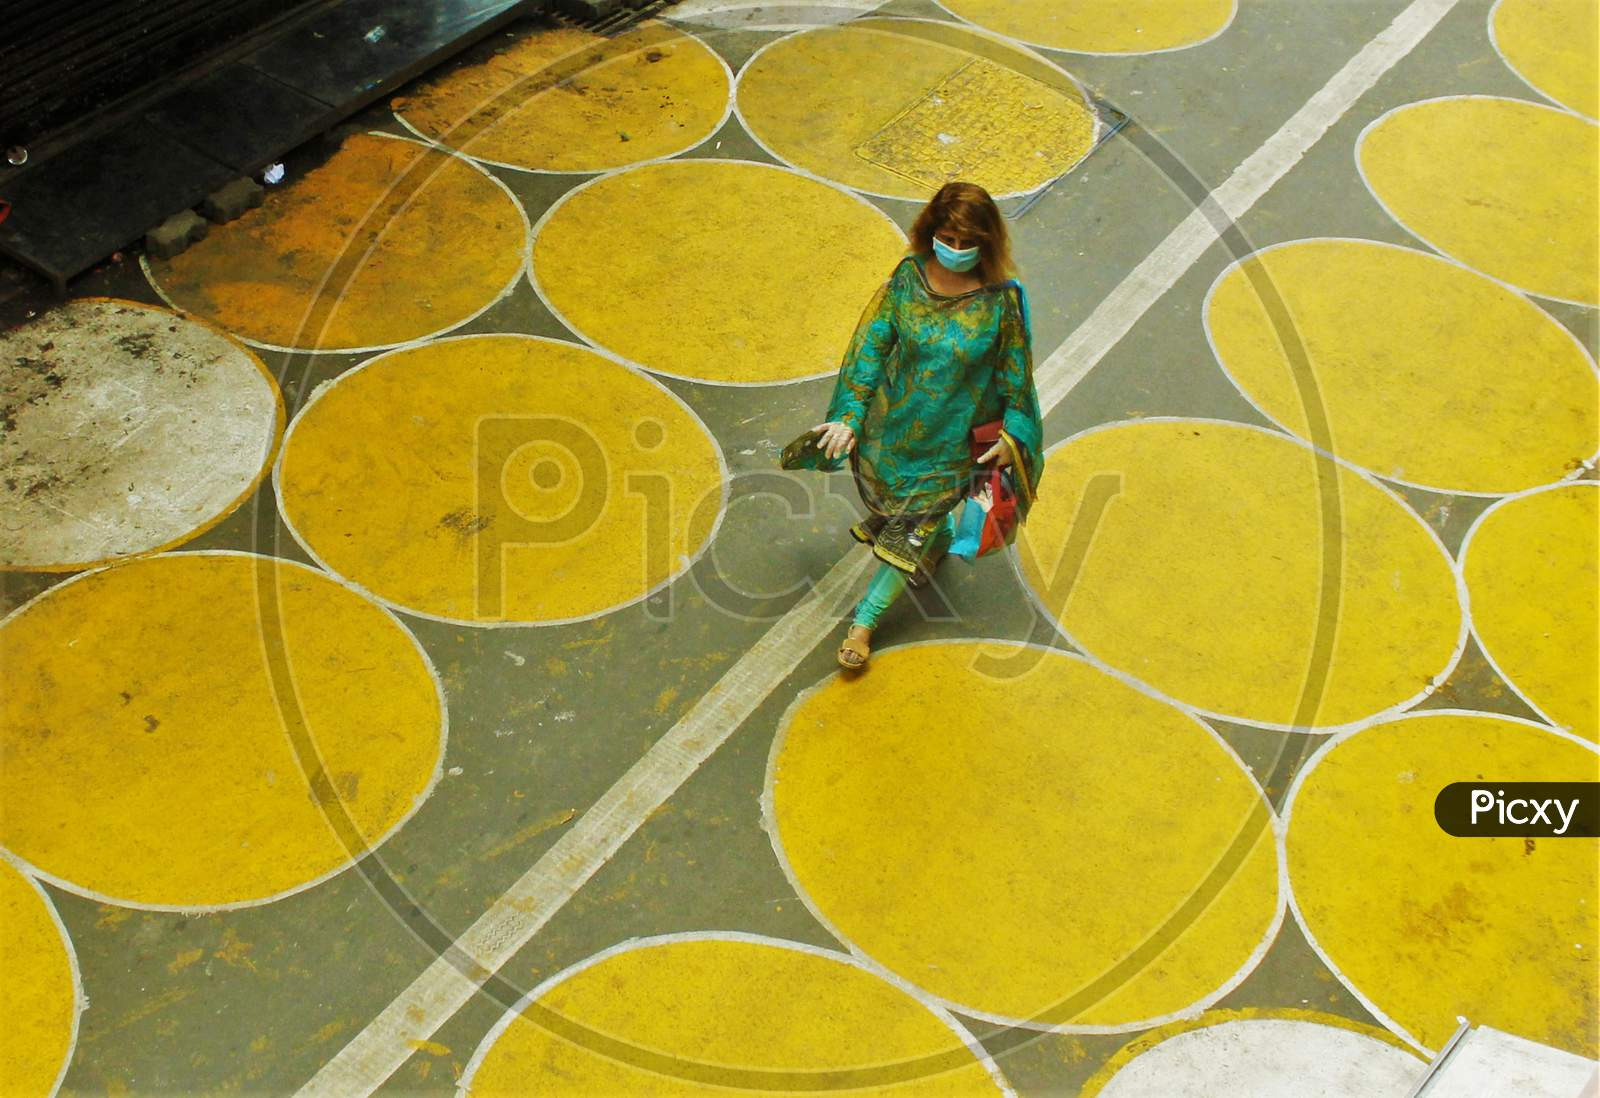 A Woman Walks Past Yellow Circles Painted For Physical Distancing At A Residential-Cum-Market Area, In Mumbai, India On June 29, 2020.